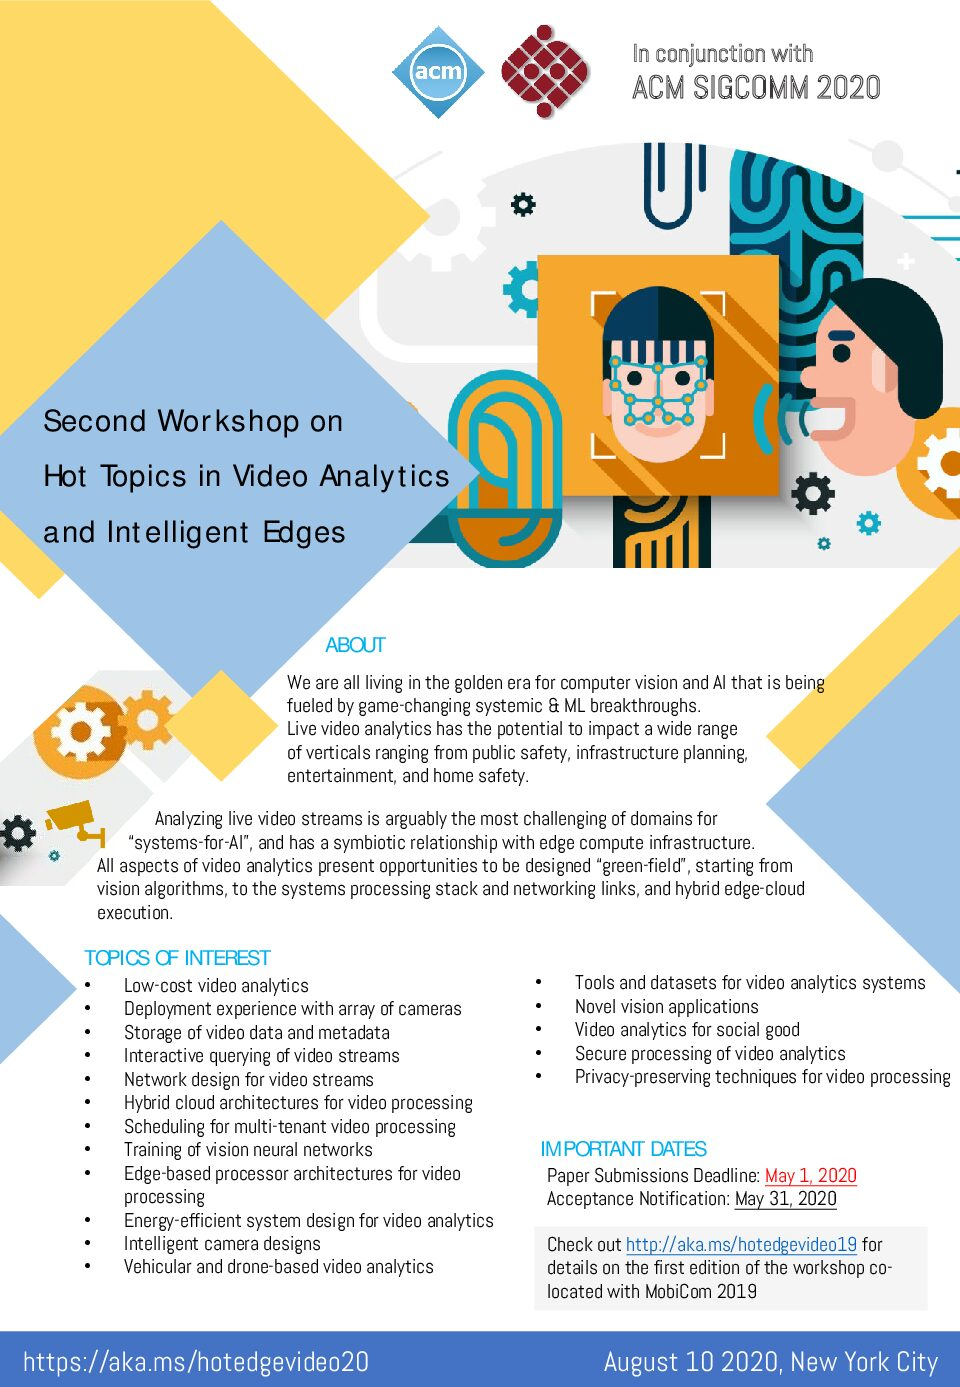 The 2nd Workshop on Hot Topics in Video Analytics and Intelligent Edges